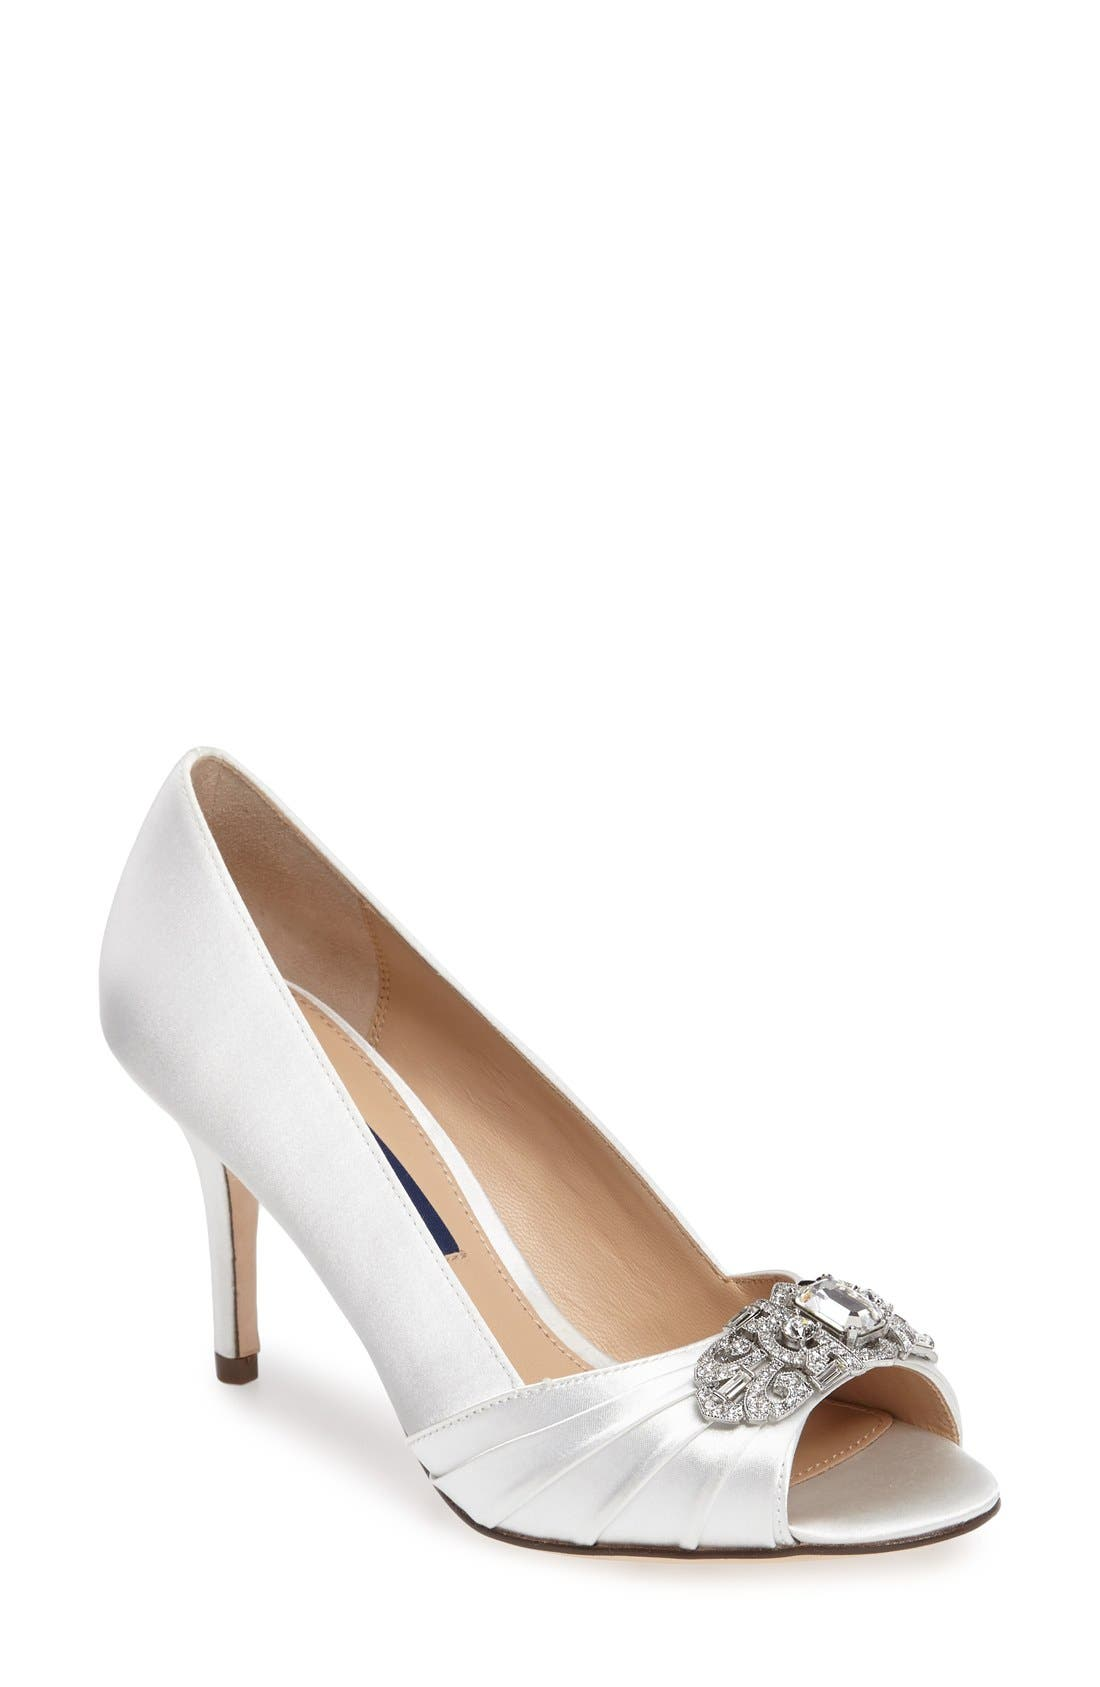 Nina 'Verity' Swarovski Peep Toe Pump (Women)